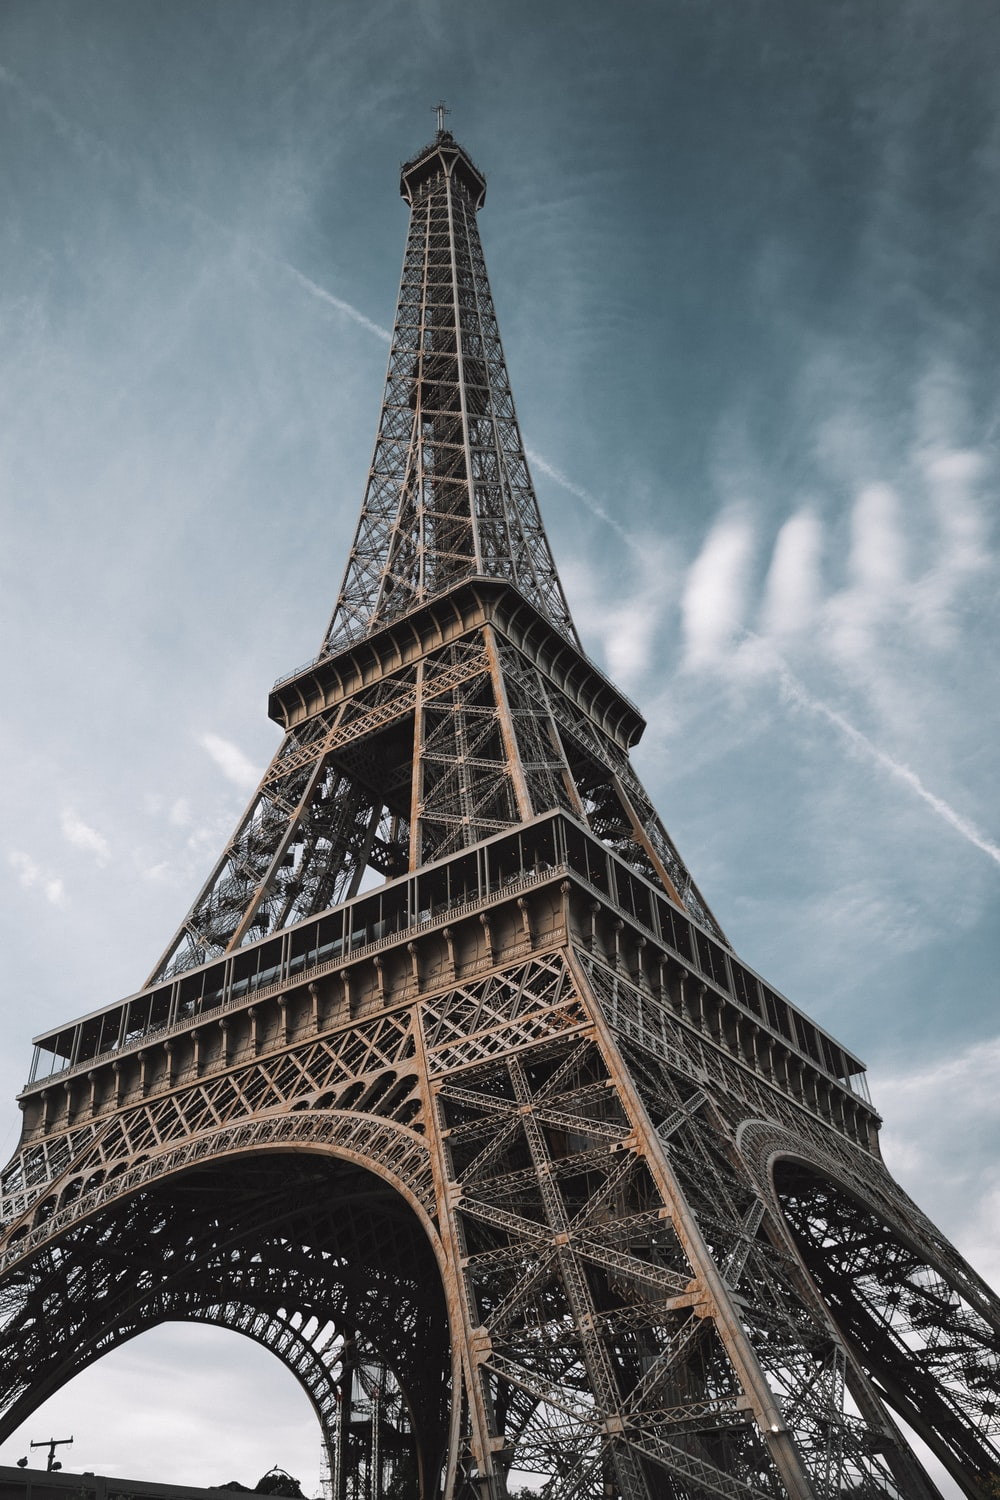 macro photography of Eiffel Tower in Paris France